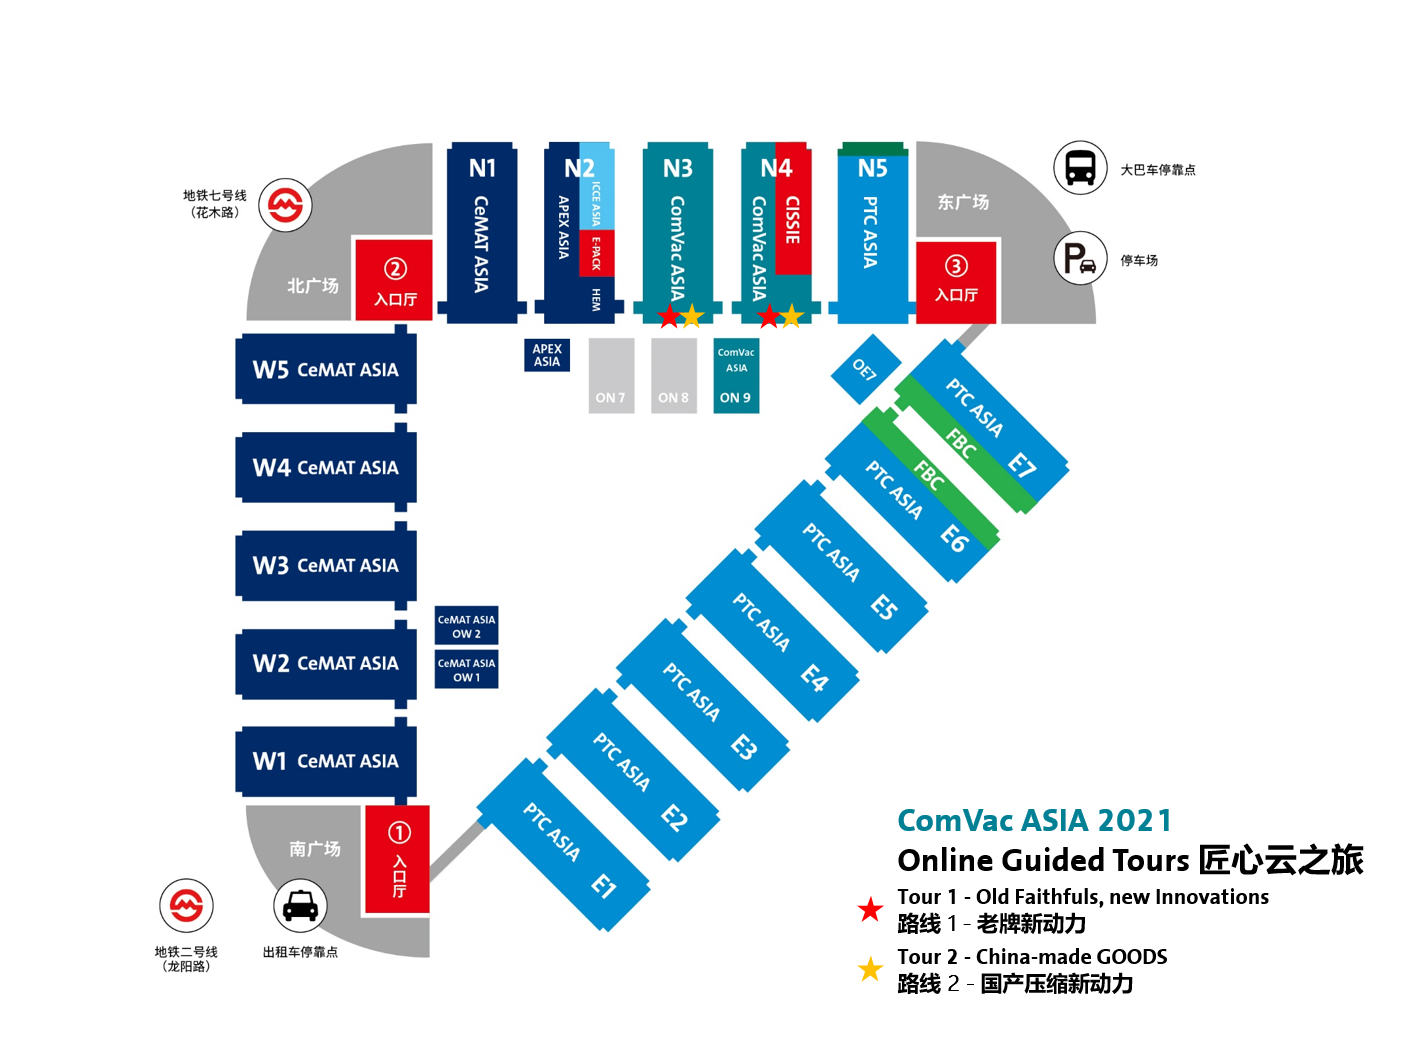 ComVac21_Online Guided Tours_Map 211015.png